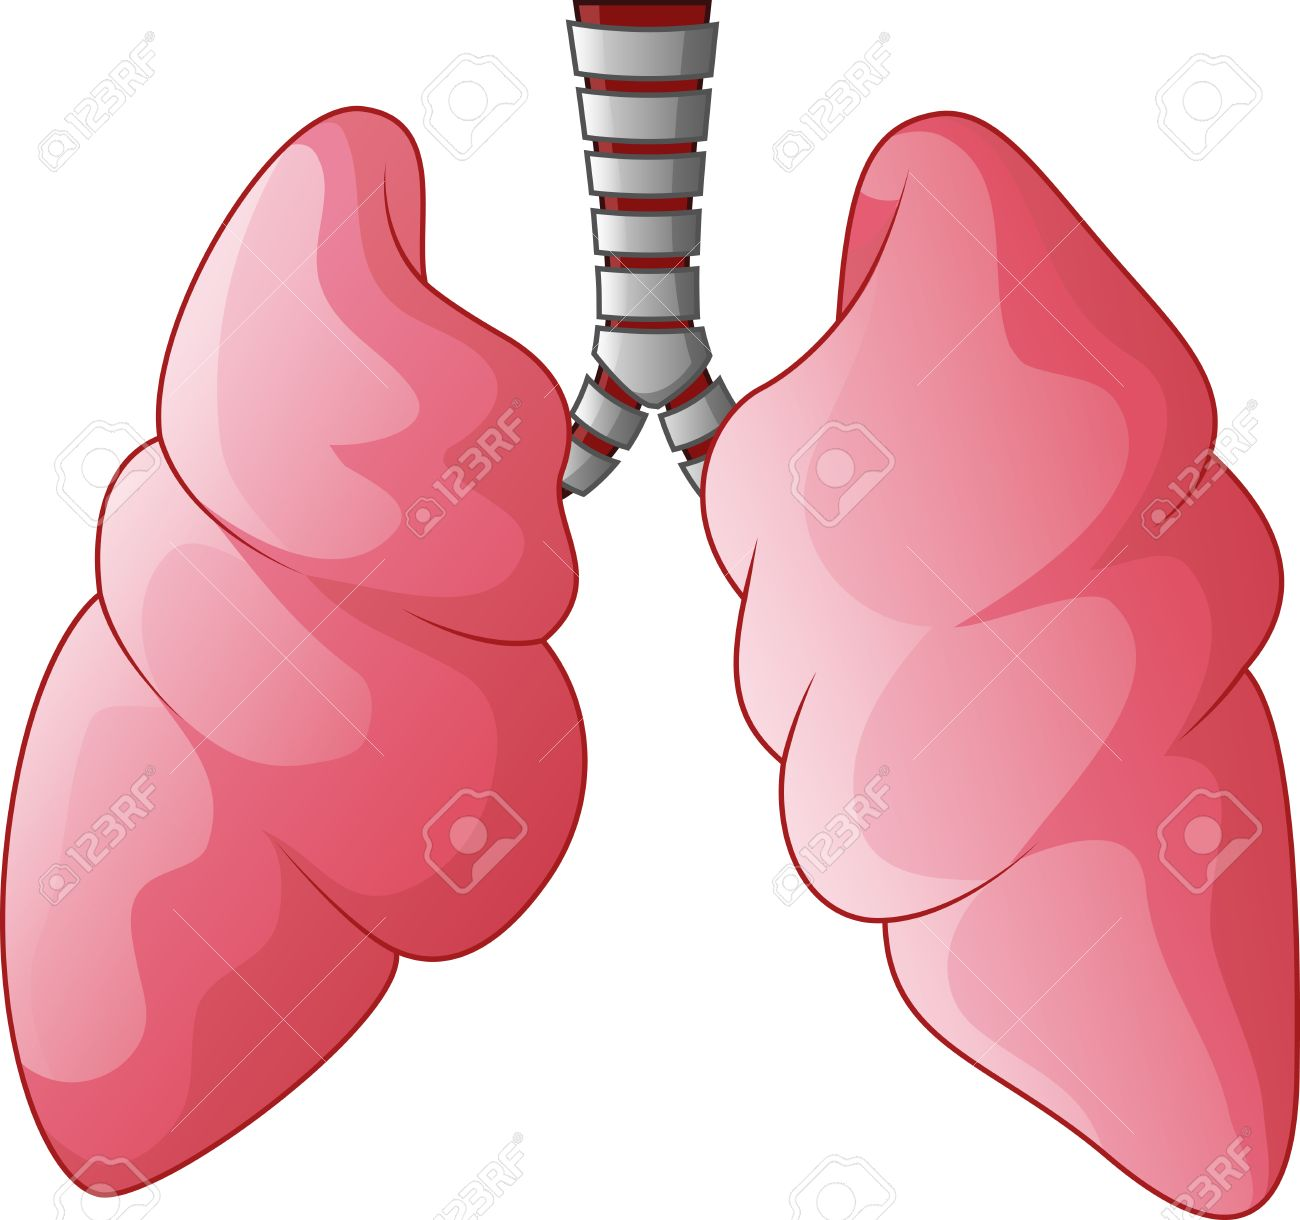 1300x1220 Human Lungs Respiratory Cartoon Royalty Free Cliparts, Vectors